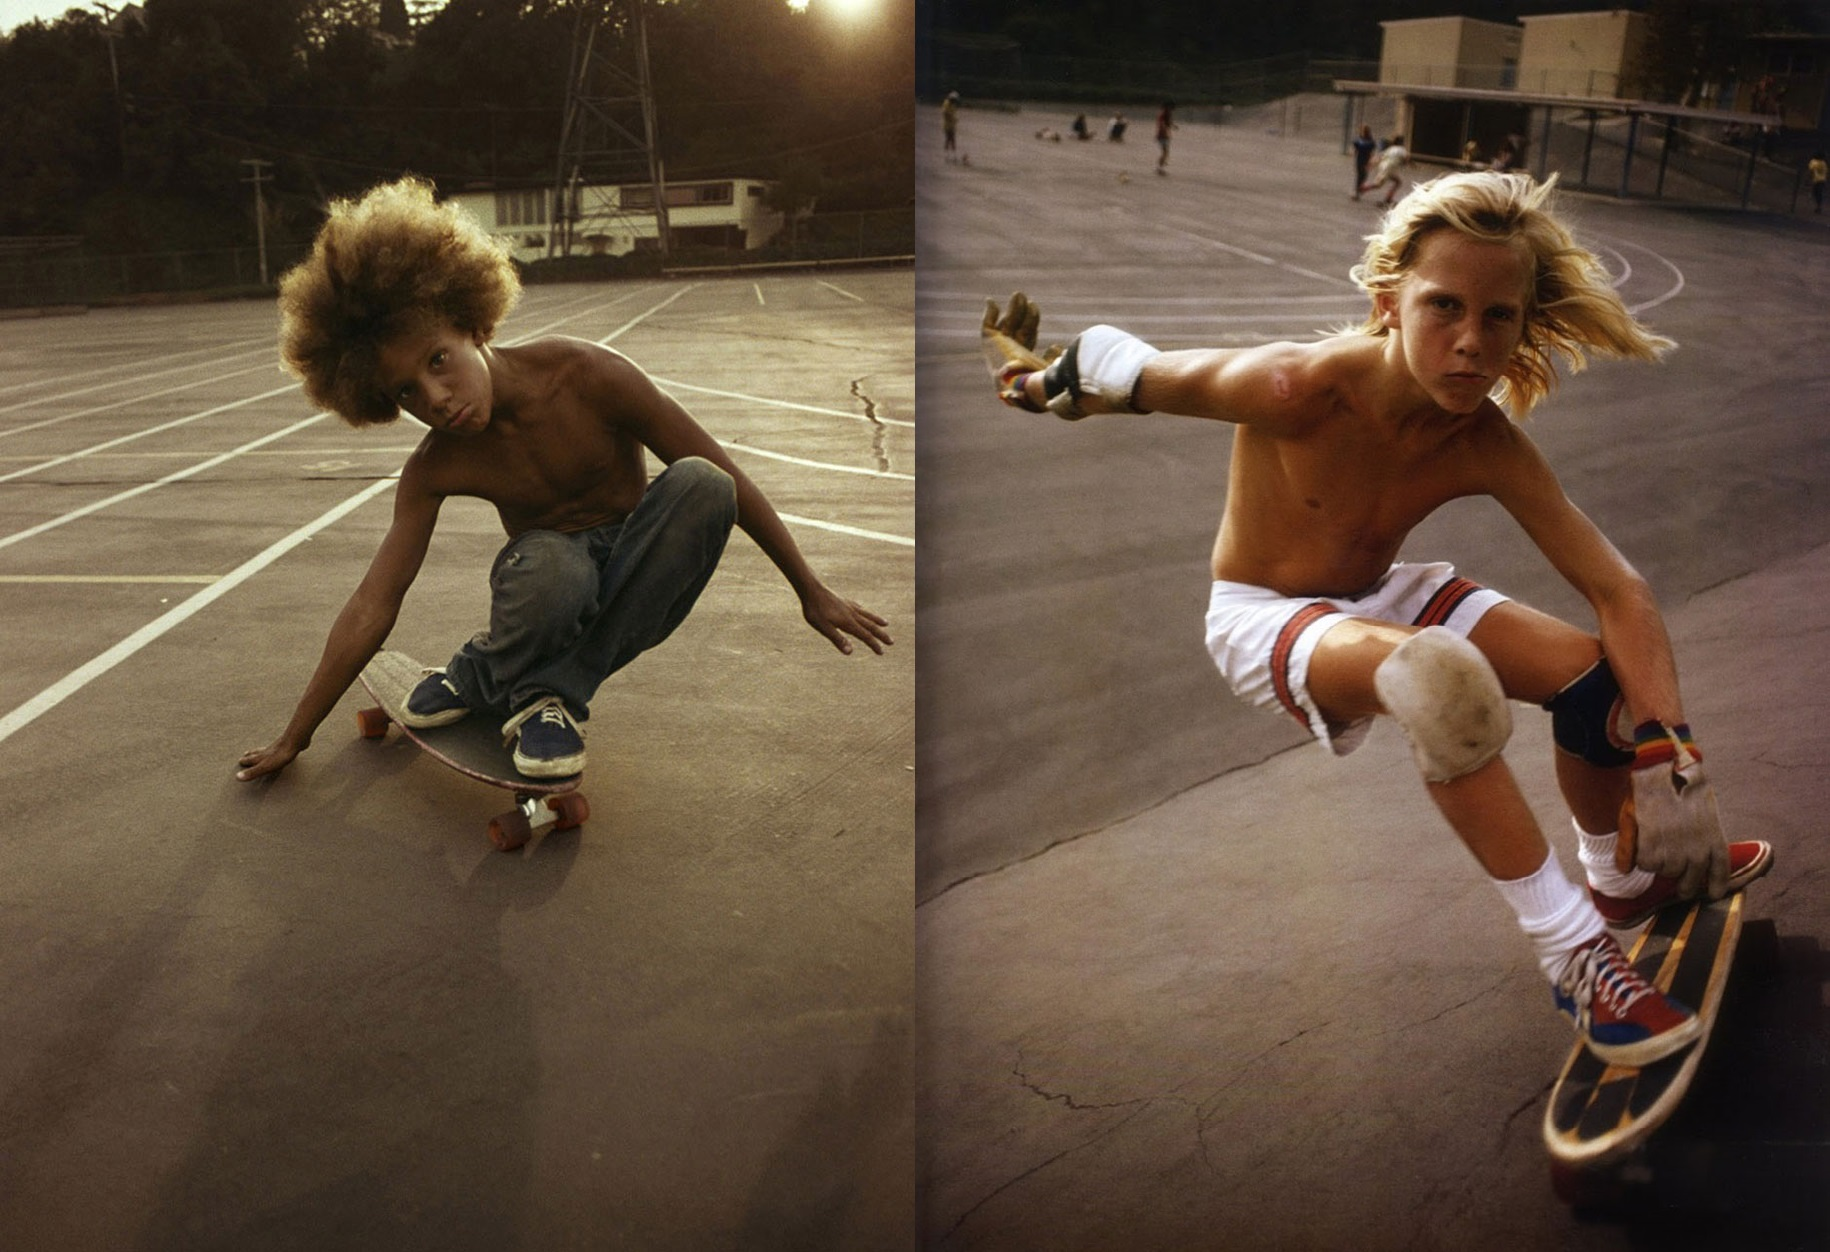 1970-California-skateboard-skater-kids-locals-only-hugh-holland-12 2